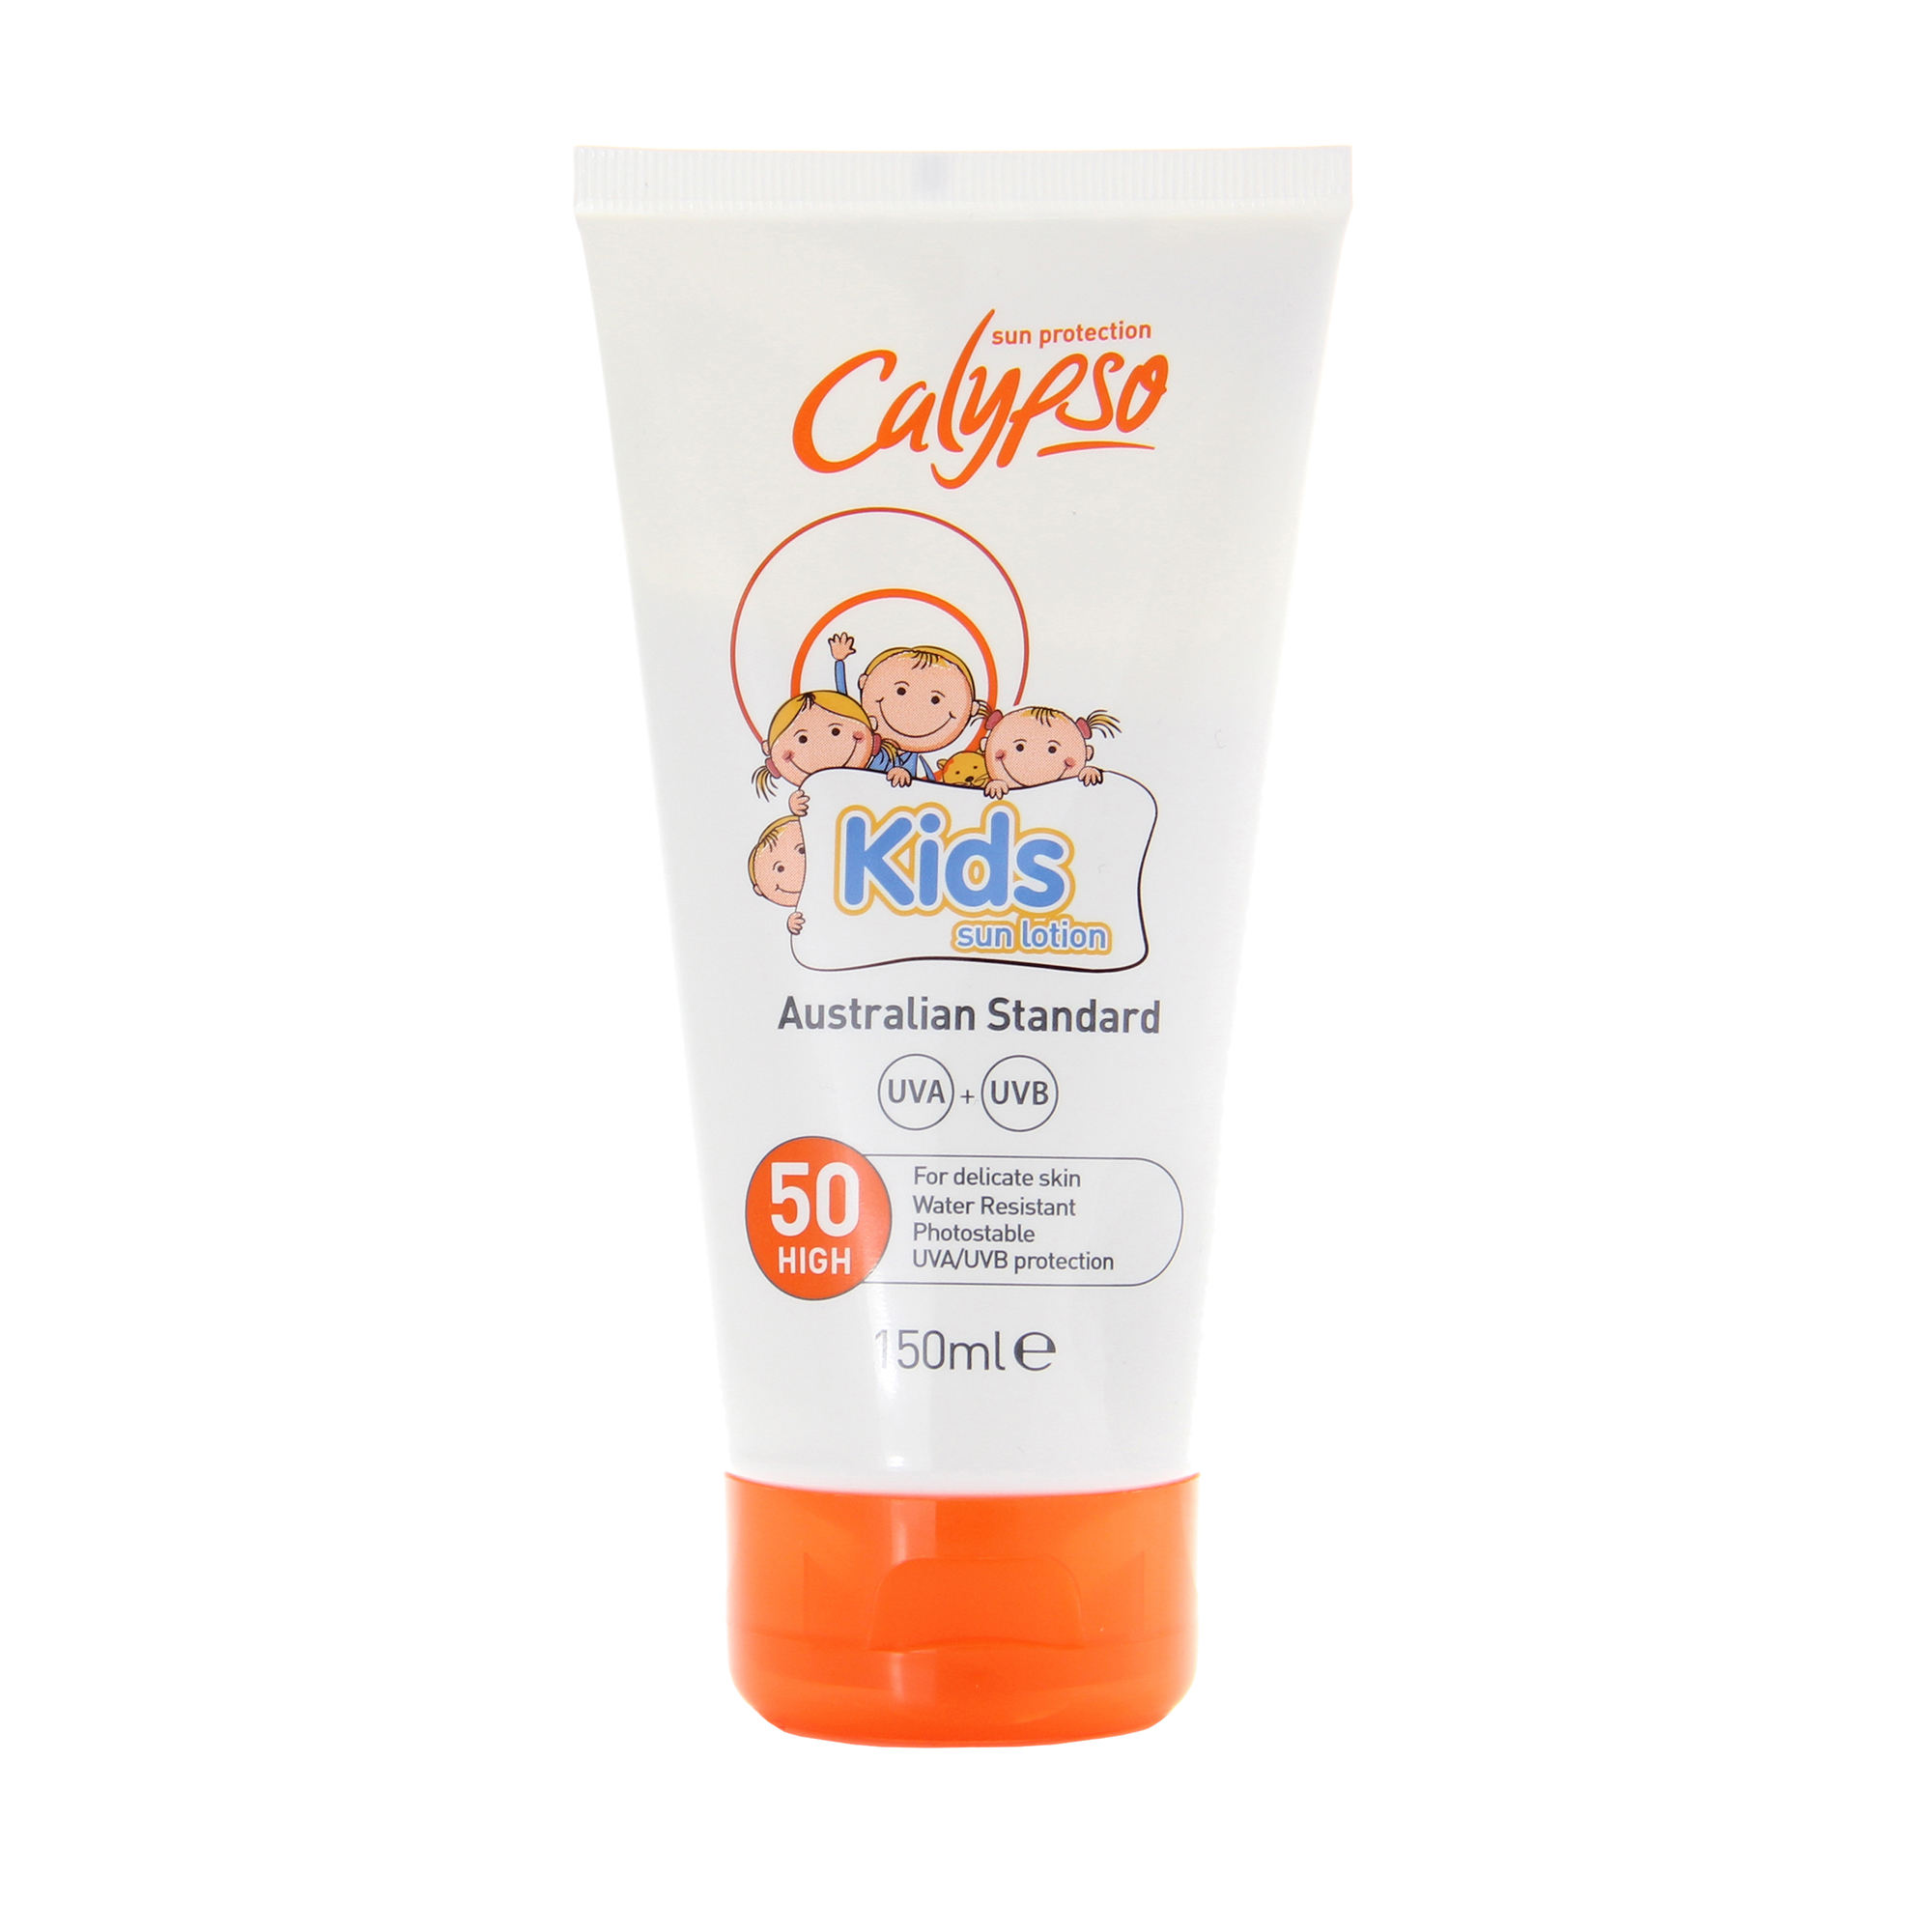 Calypso Kids Sun Lotion Australian Standard Sunscreen - Wholesale SPF50 Sun Protect Waterproof Sunblock for Baby High UV Protect